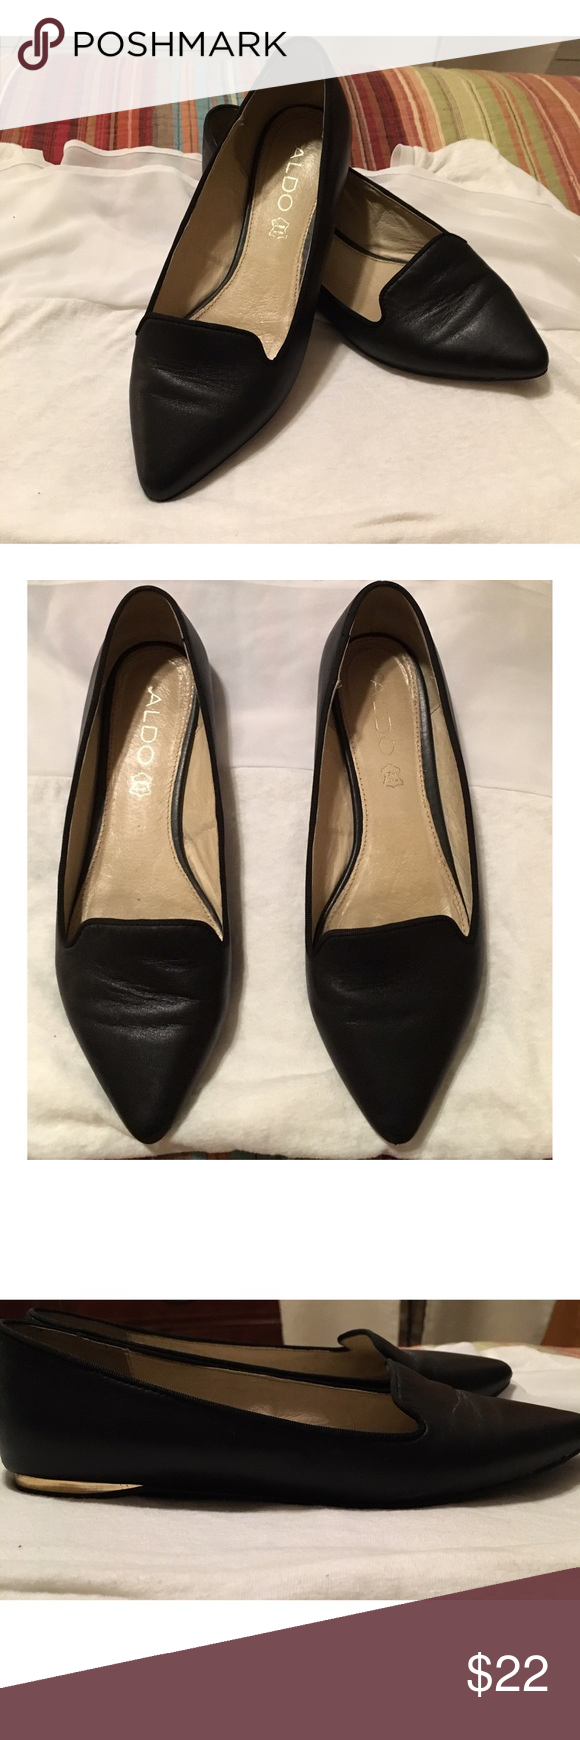 Aldo pointed flats These are Aldo pointed black flats and have only been worn a few times. They are pure leather and have minimal creases. They are very comfortable and on the bottom they have a flash of gold.They are a 7.5 and I'm a size 8 and they fit perfect. ALDO Shoes Flats & Loafers